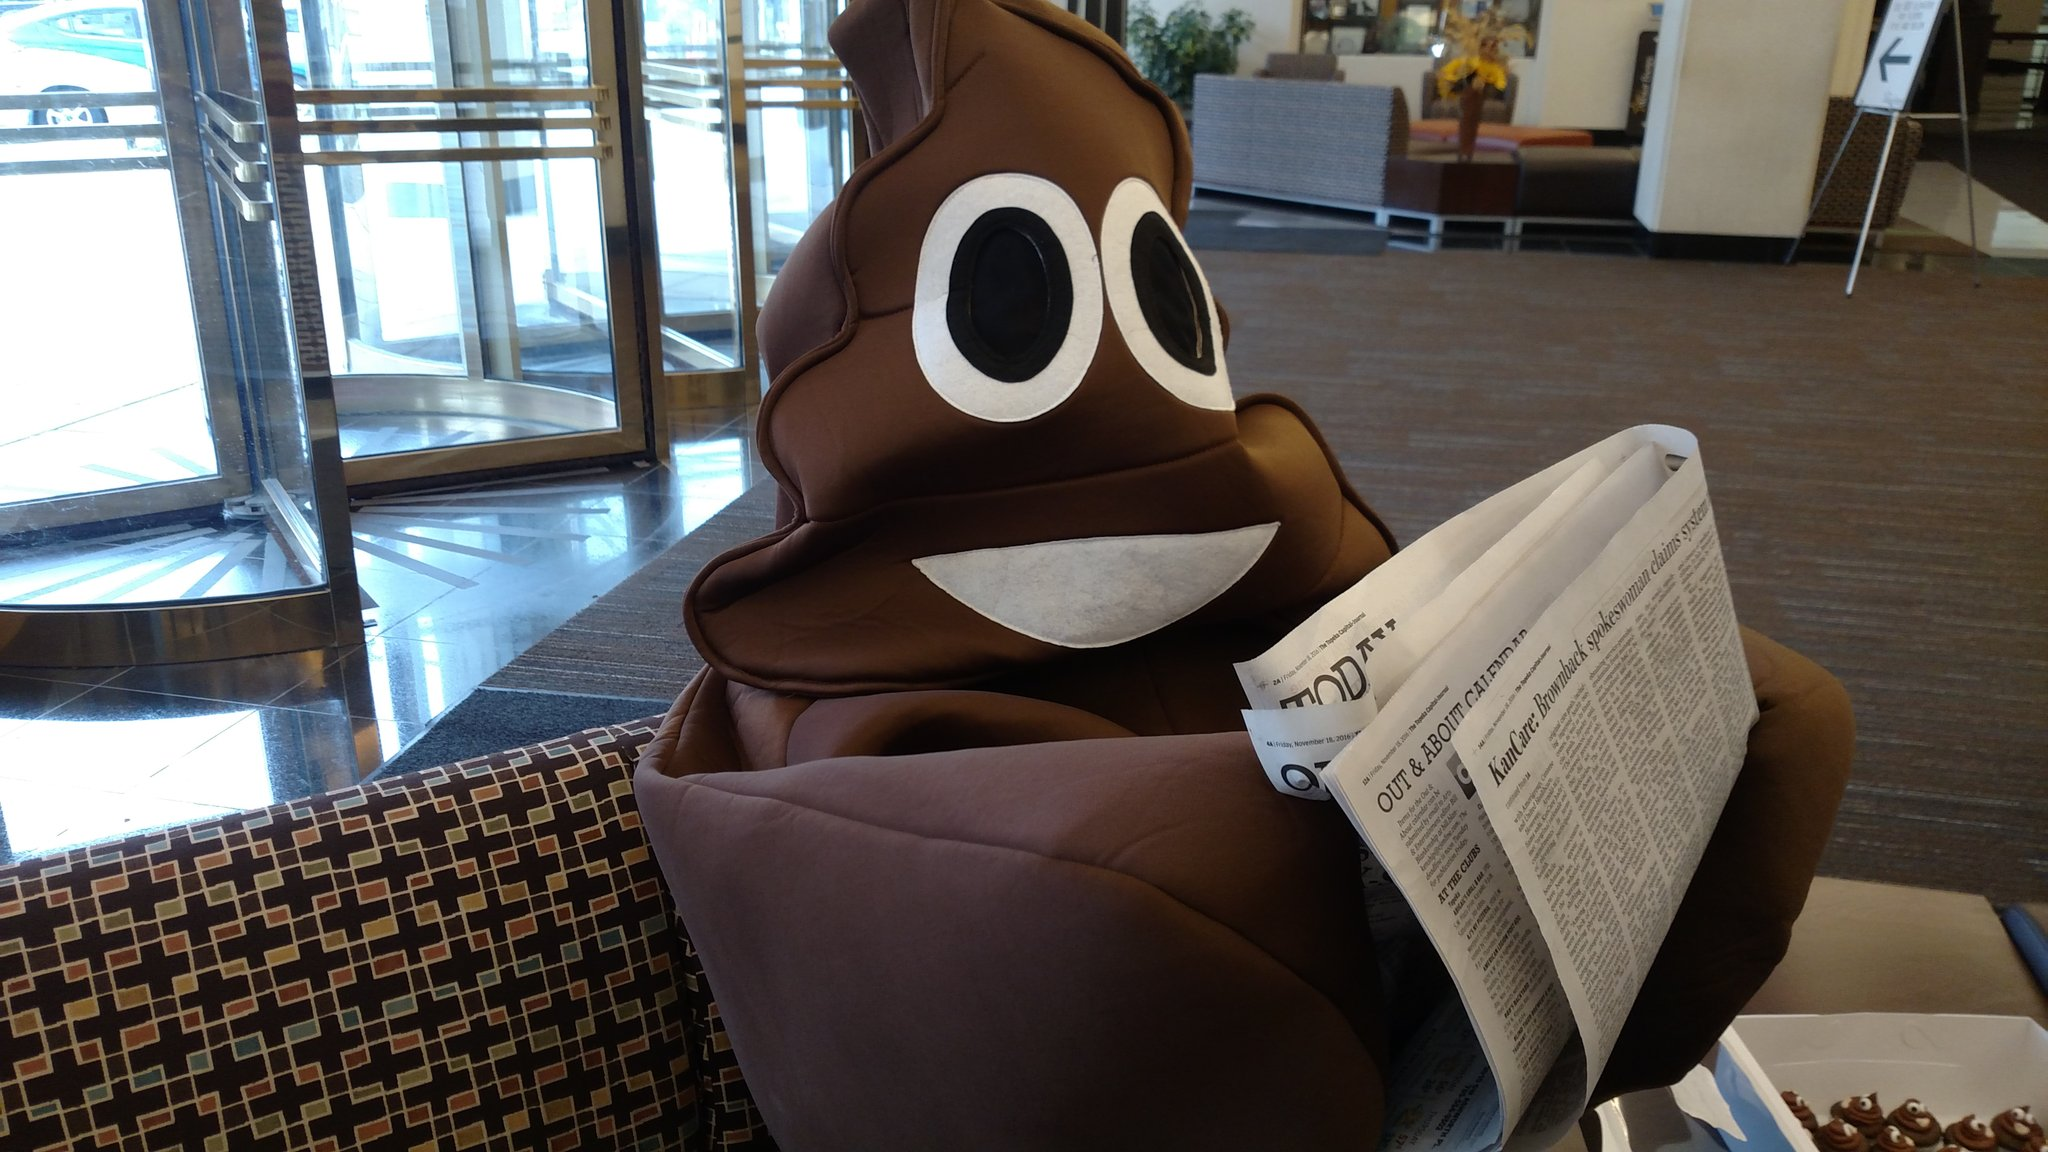 Hey @CJOnline, #poopsuit says thanks for ink! #awesome #worldtoiletday  #topeka https://t.co/cbpZvKUud1 https://t.co/6DXgfjRzXh